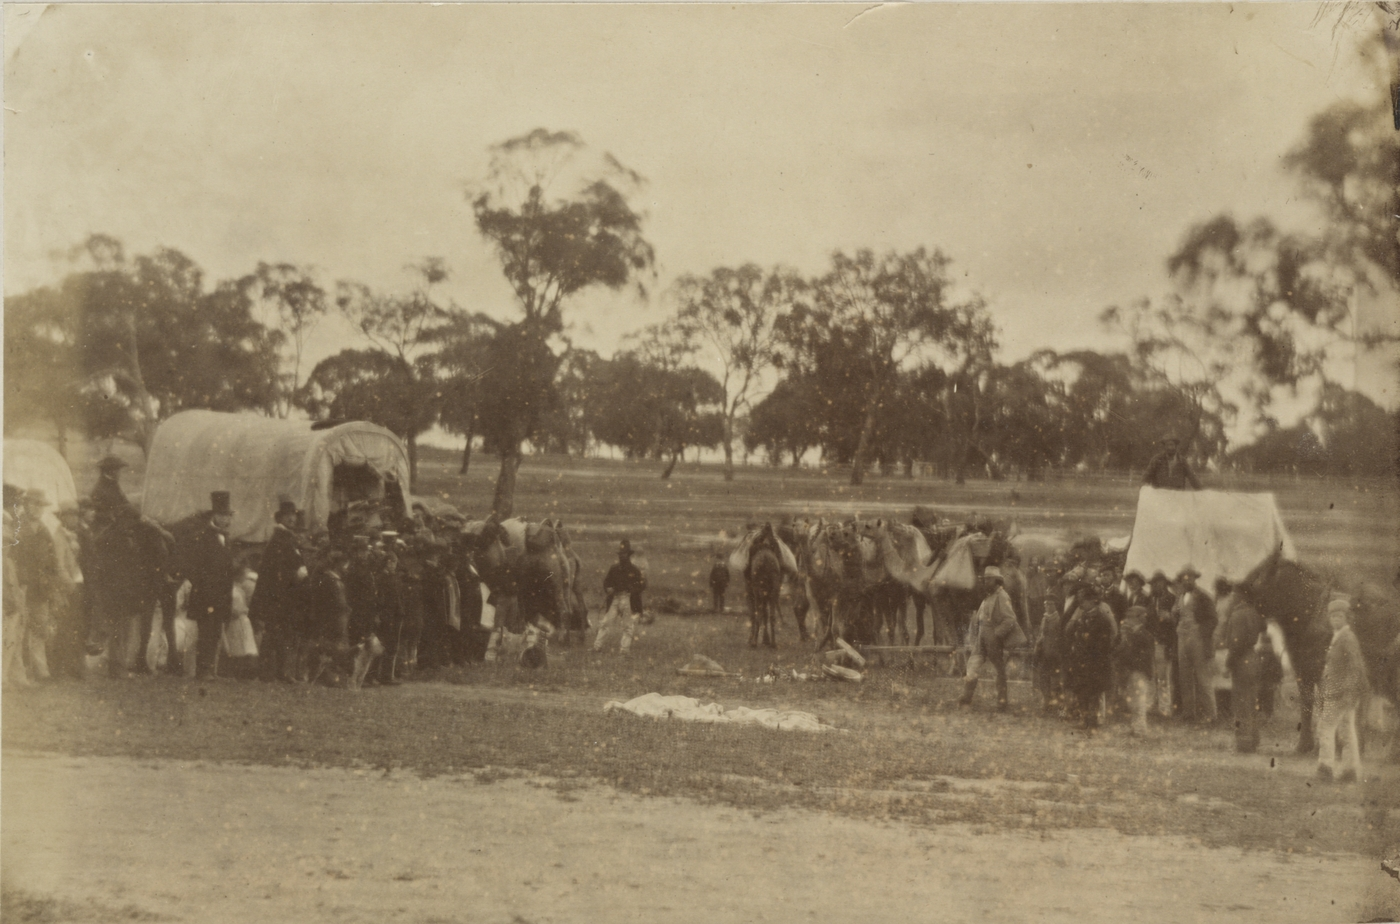 Group of people camped with horses